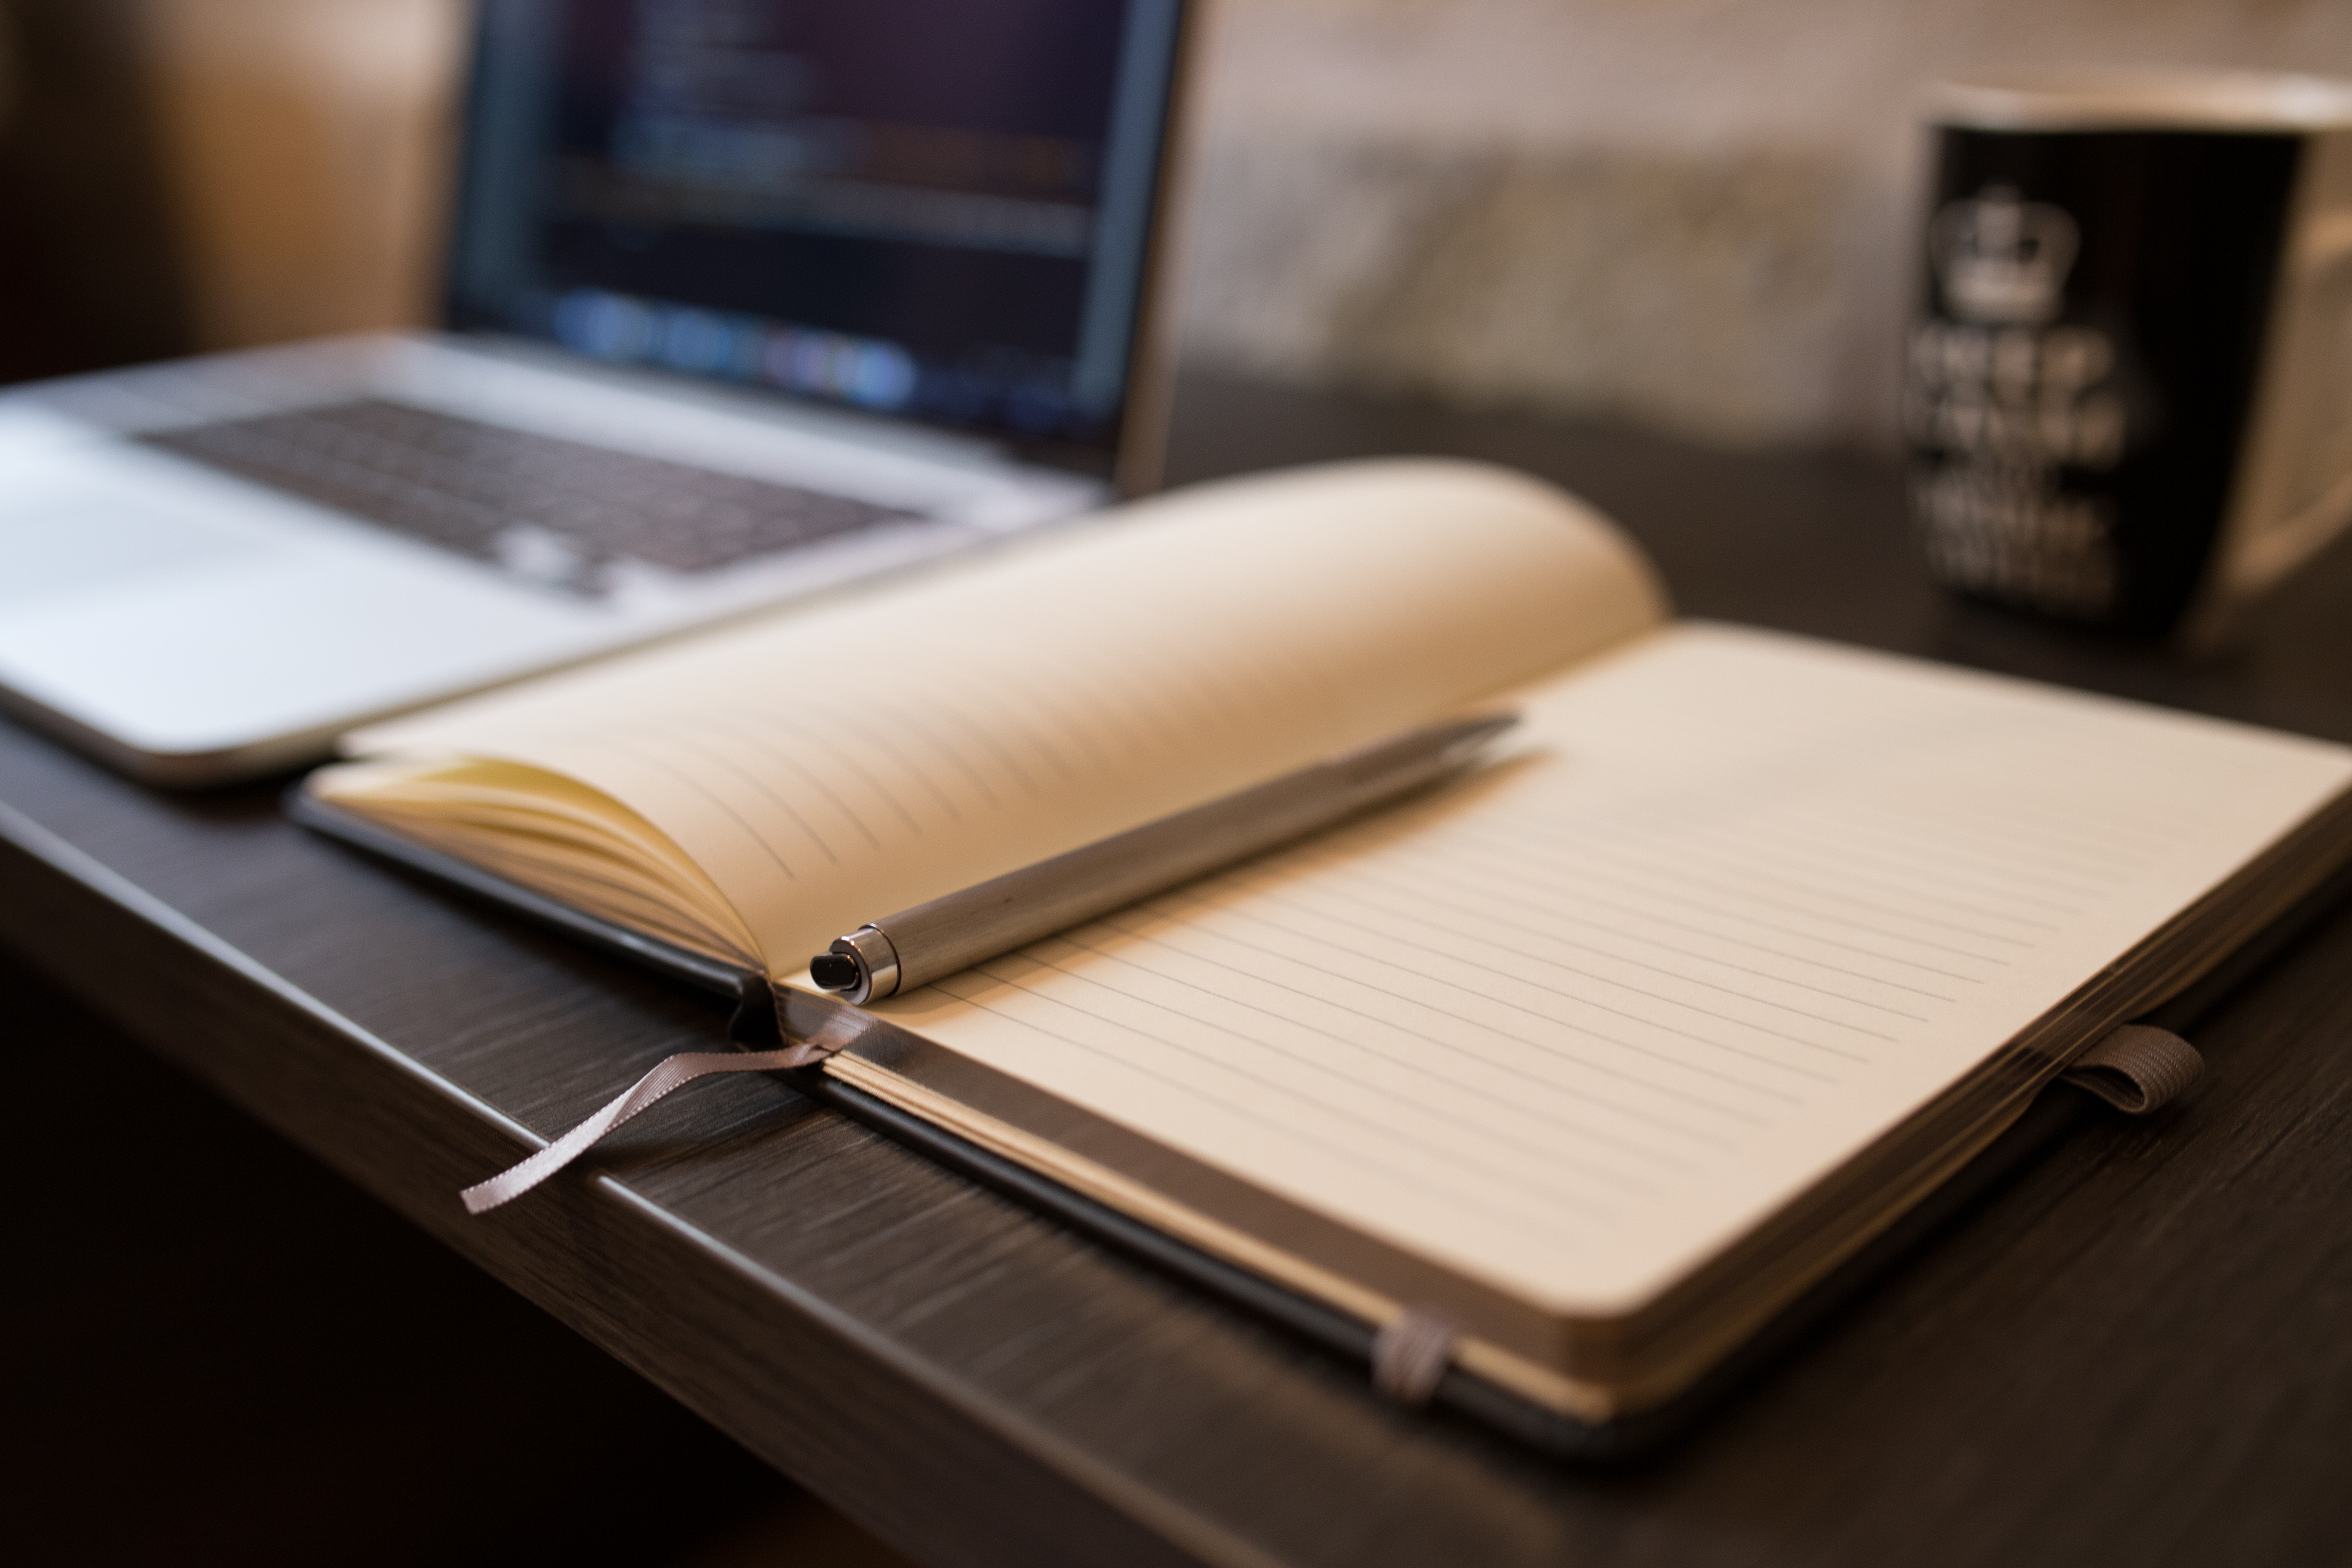 Journaling and writing | Michelle Hy